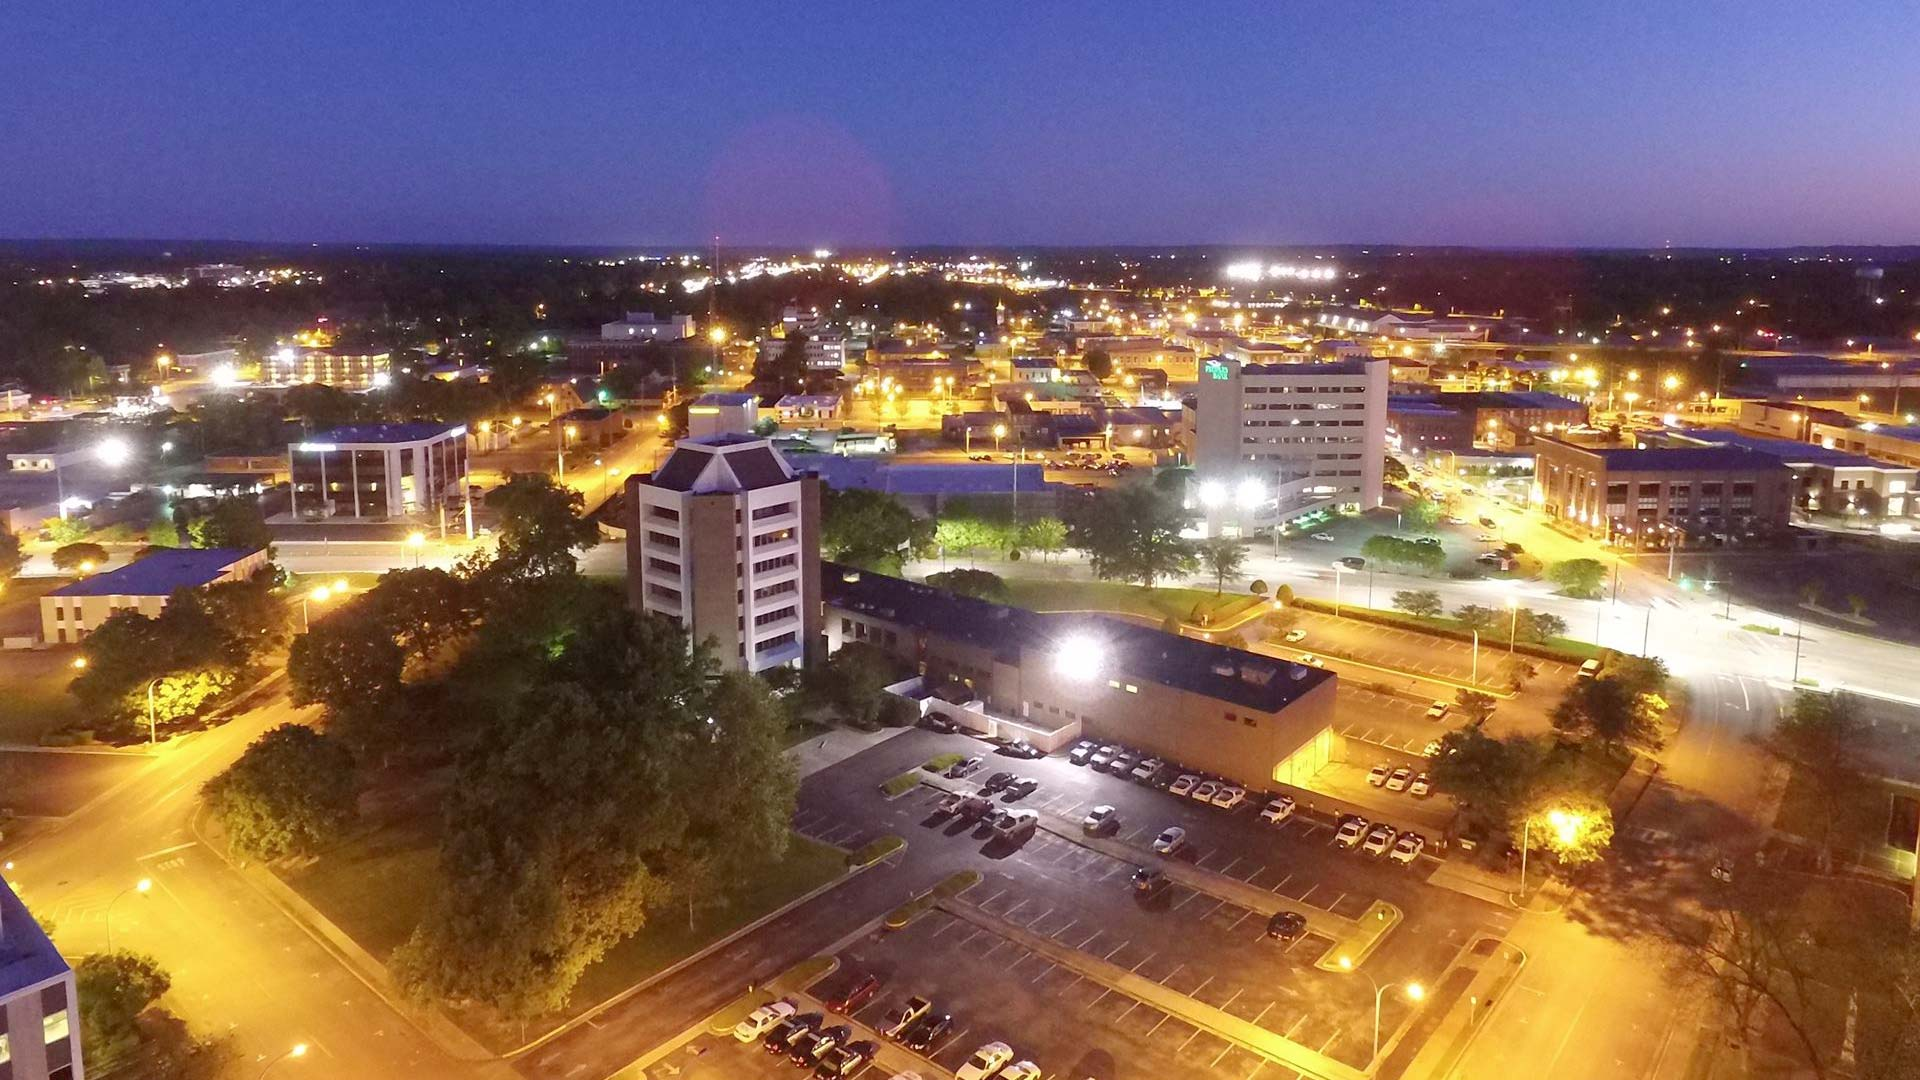 Aerial View of Decatur